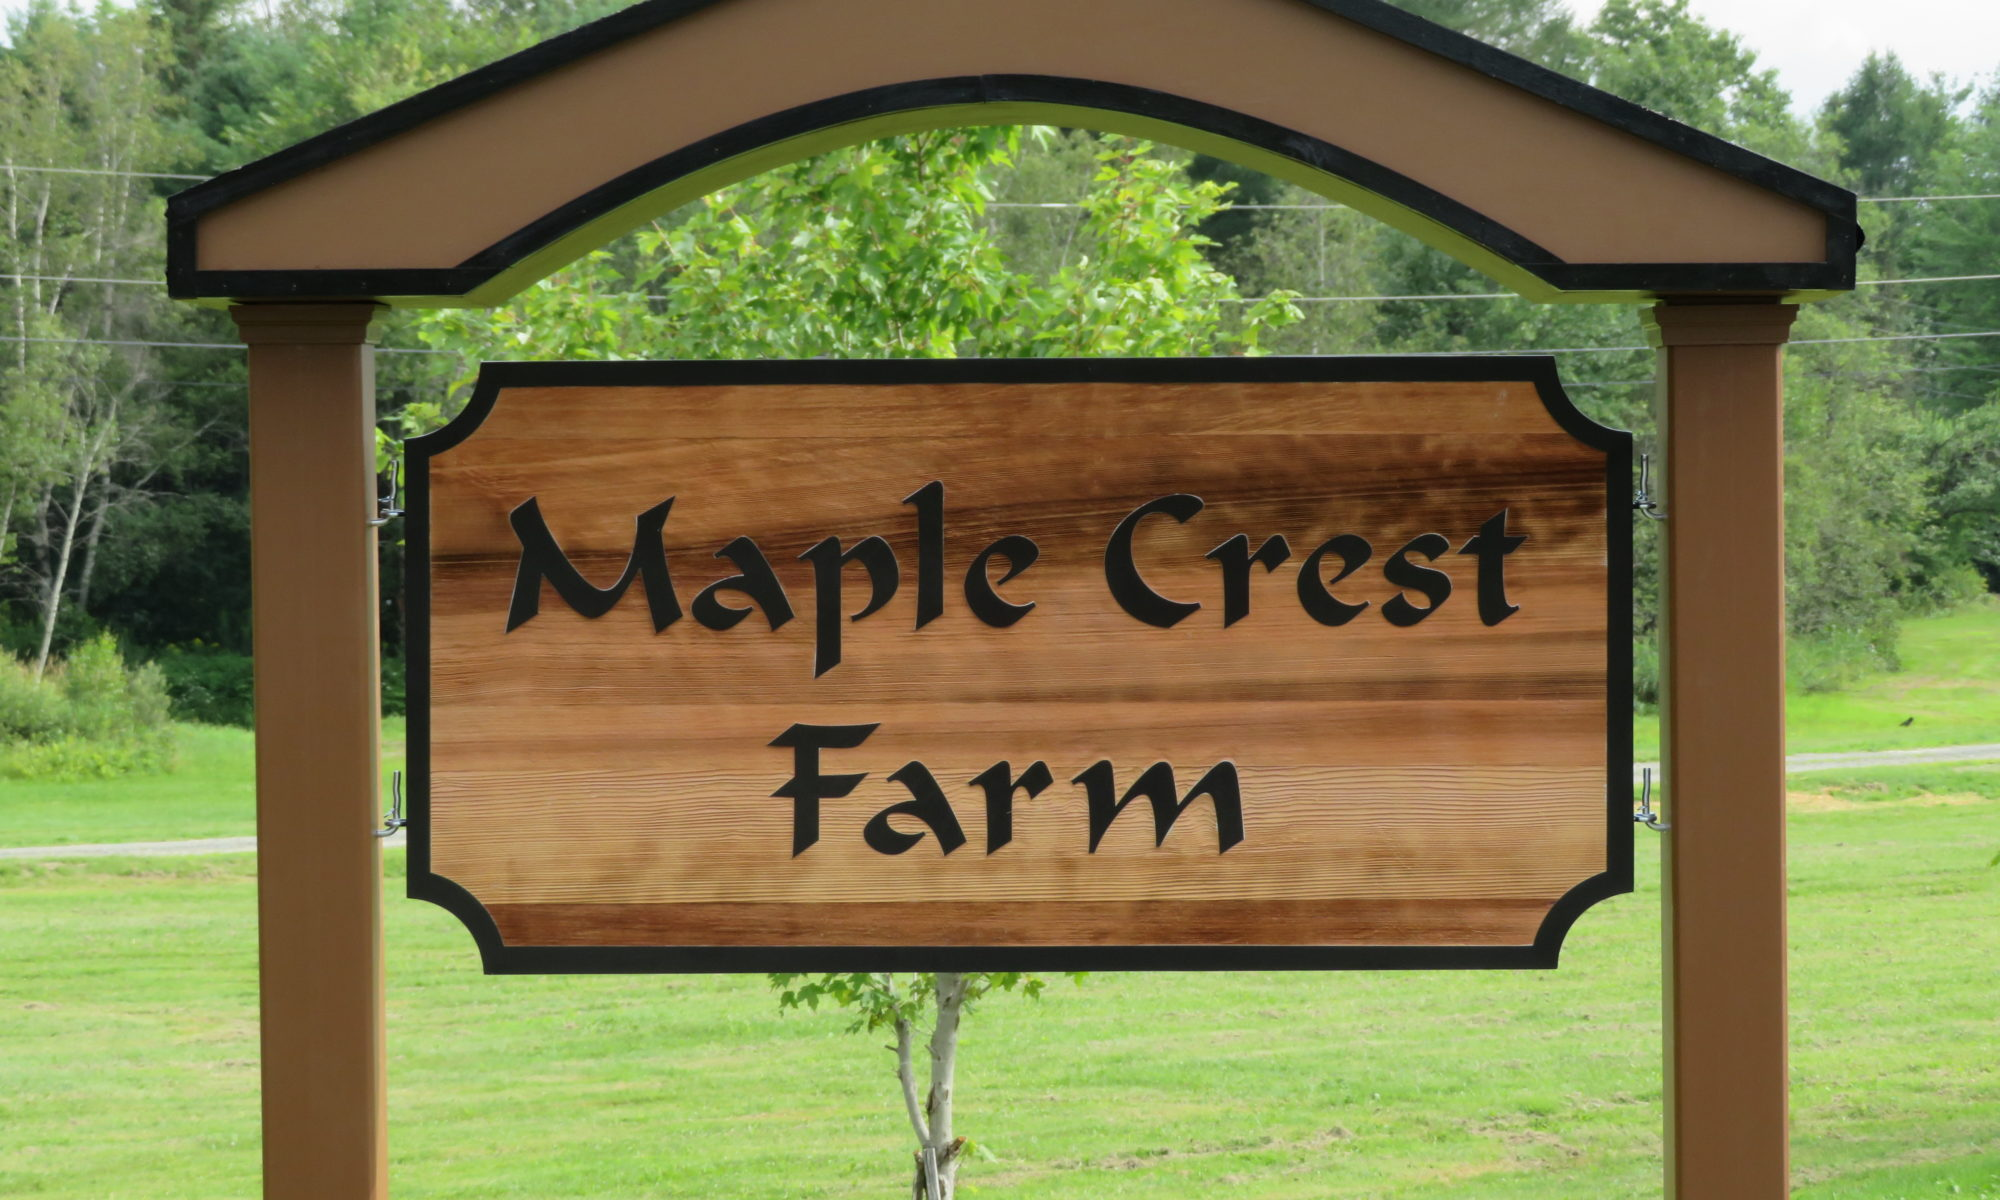 Maple Crest Farm